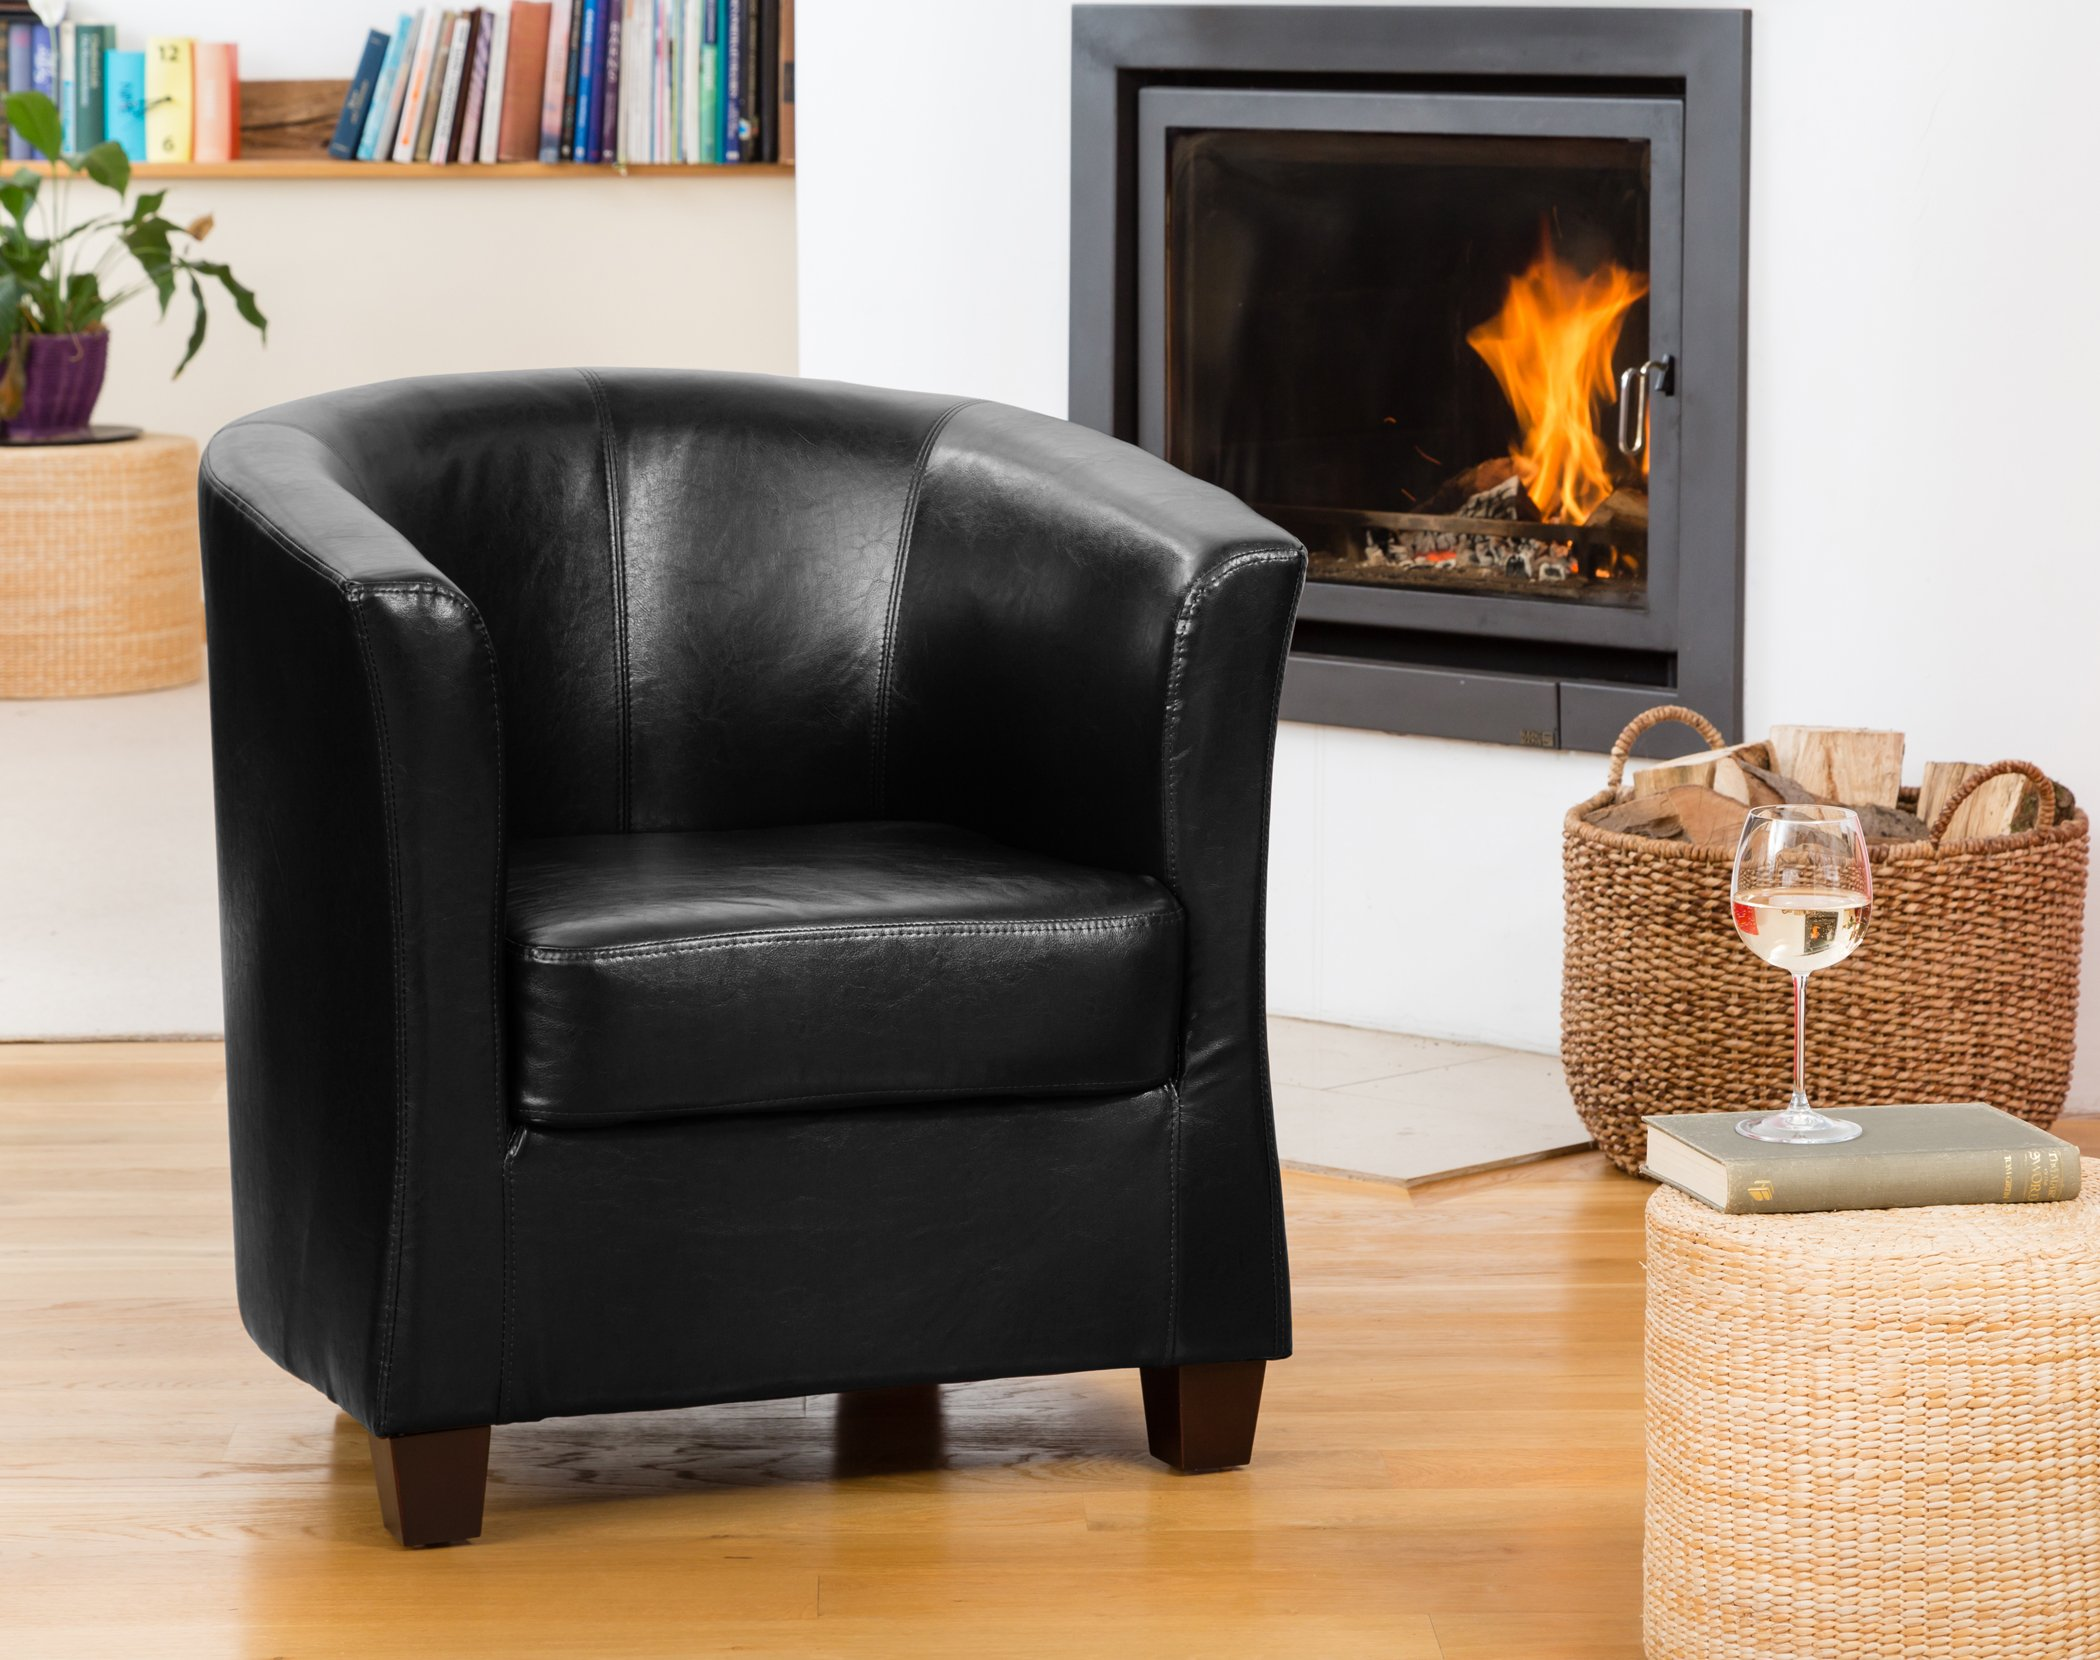 Pelham Tub Chair Black